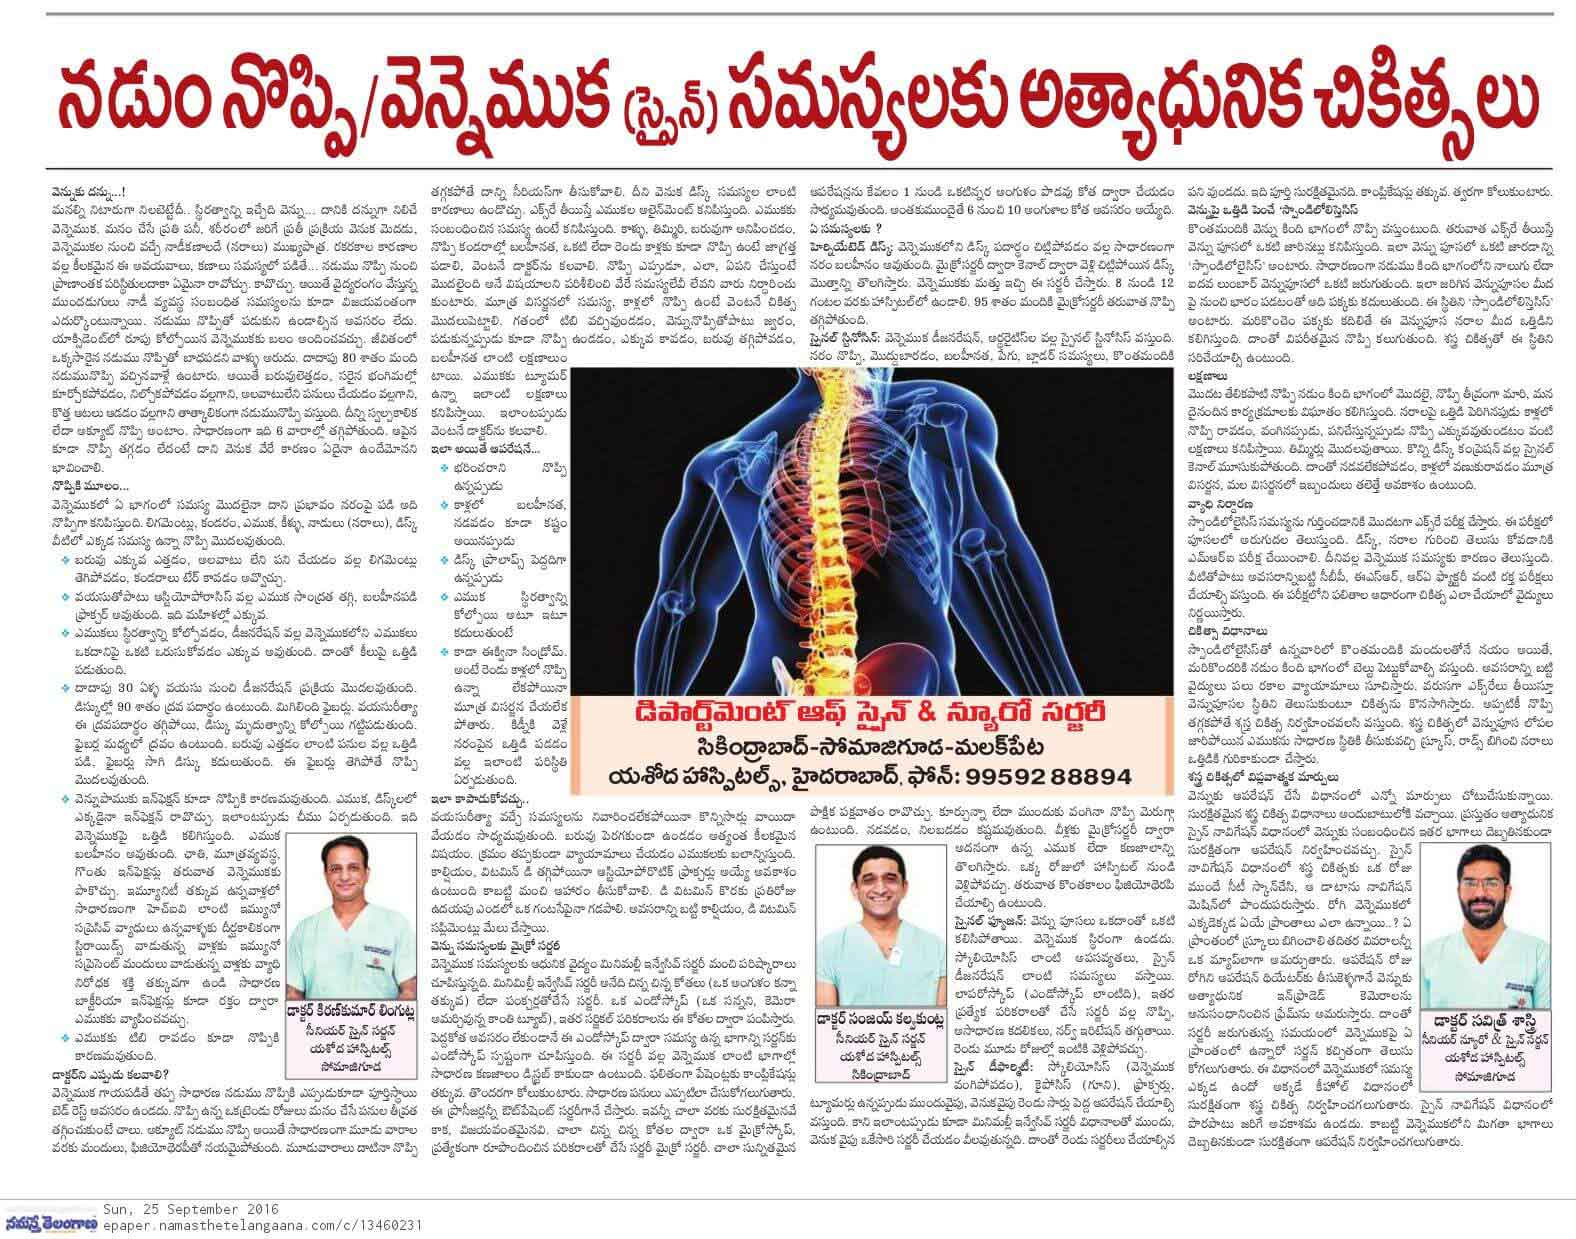 Latest treatments for back ache and spine disorders